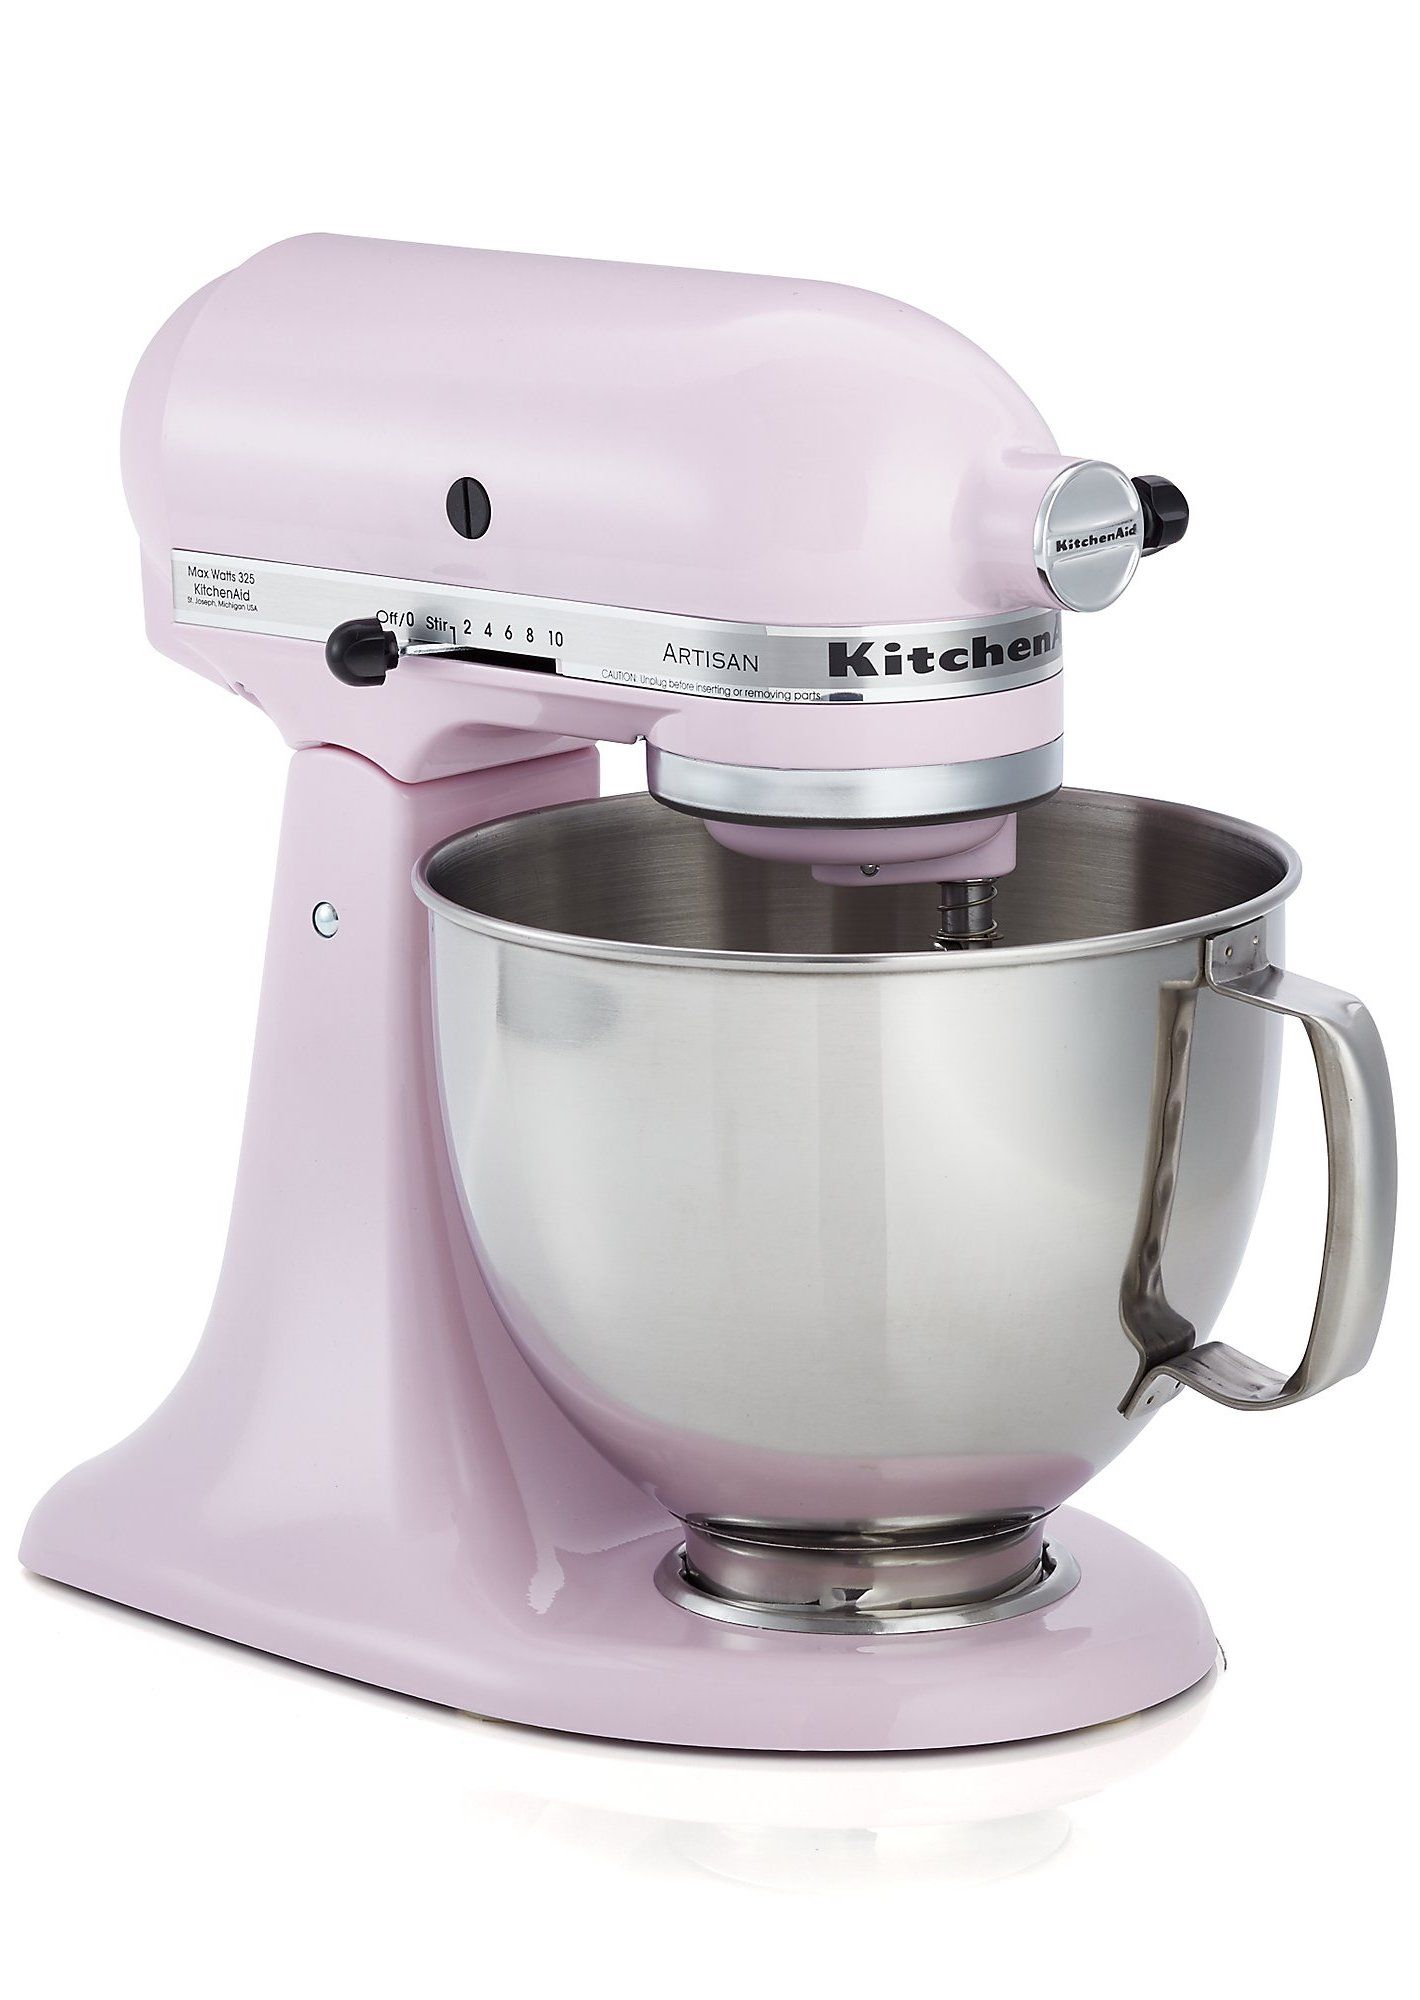 Wedding Registry Item of the Week | KitchenAid ® Artisan Pink ...